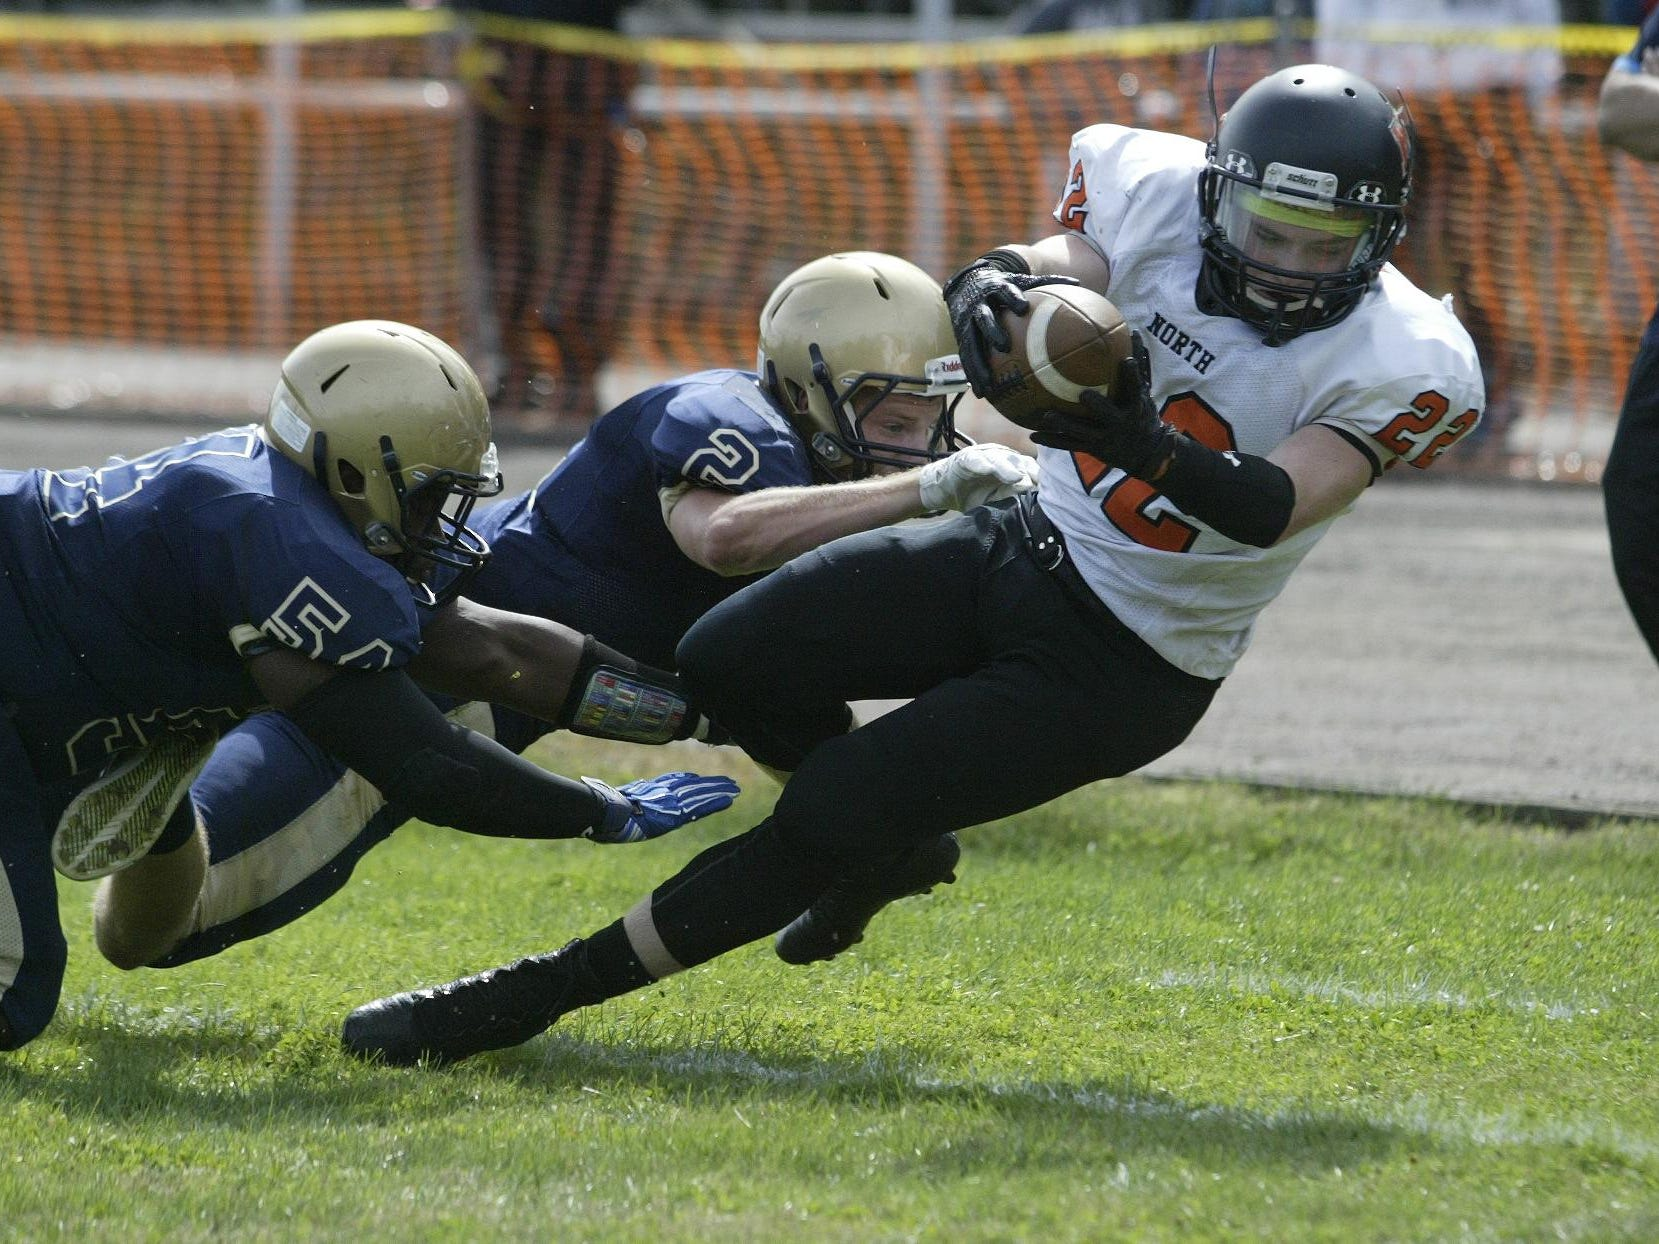 Middletown North High School running back Connor Welsh dives just short of the end zone while being tacked by Freehold's Jake Curry (#2) and Marki Gill #54 (left) during a Shore Conference game, Saturday afternoon, at Freehold.